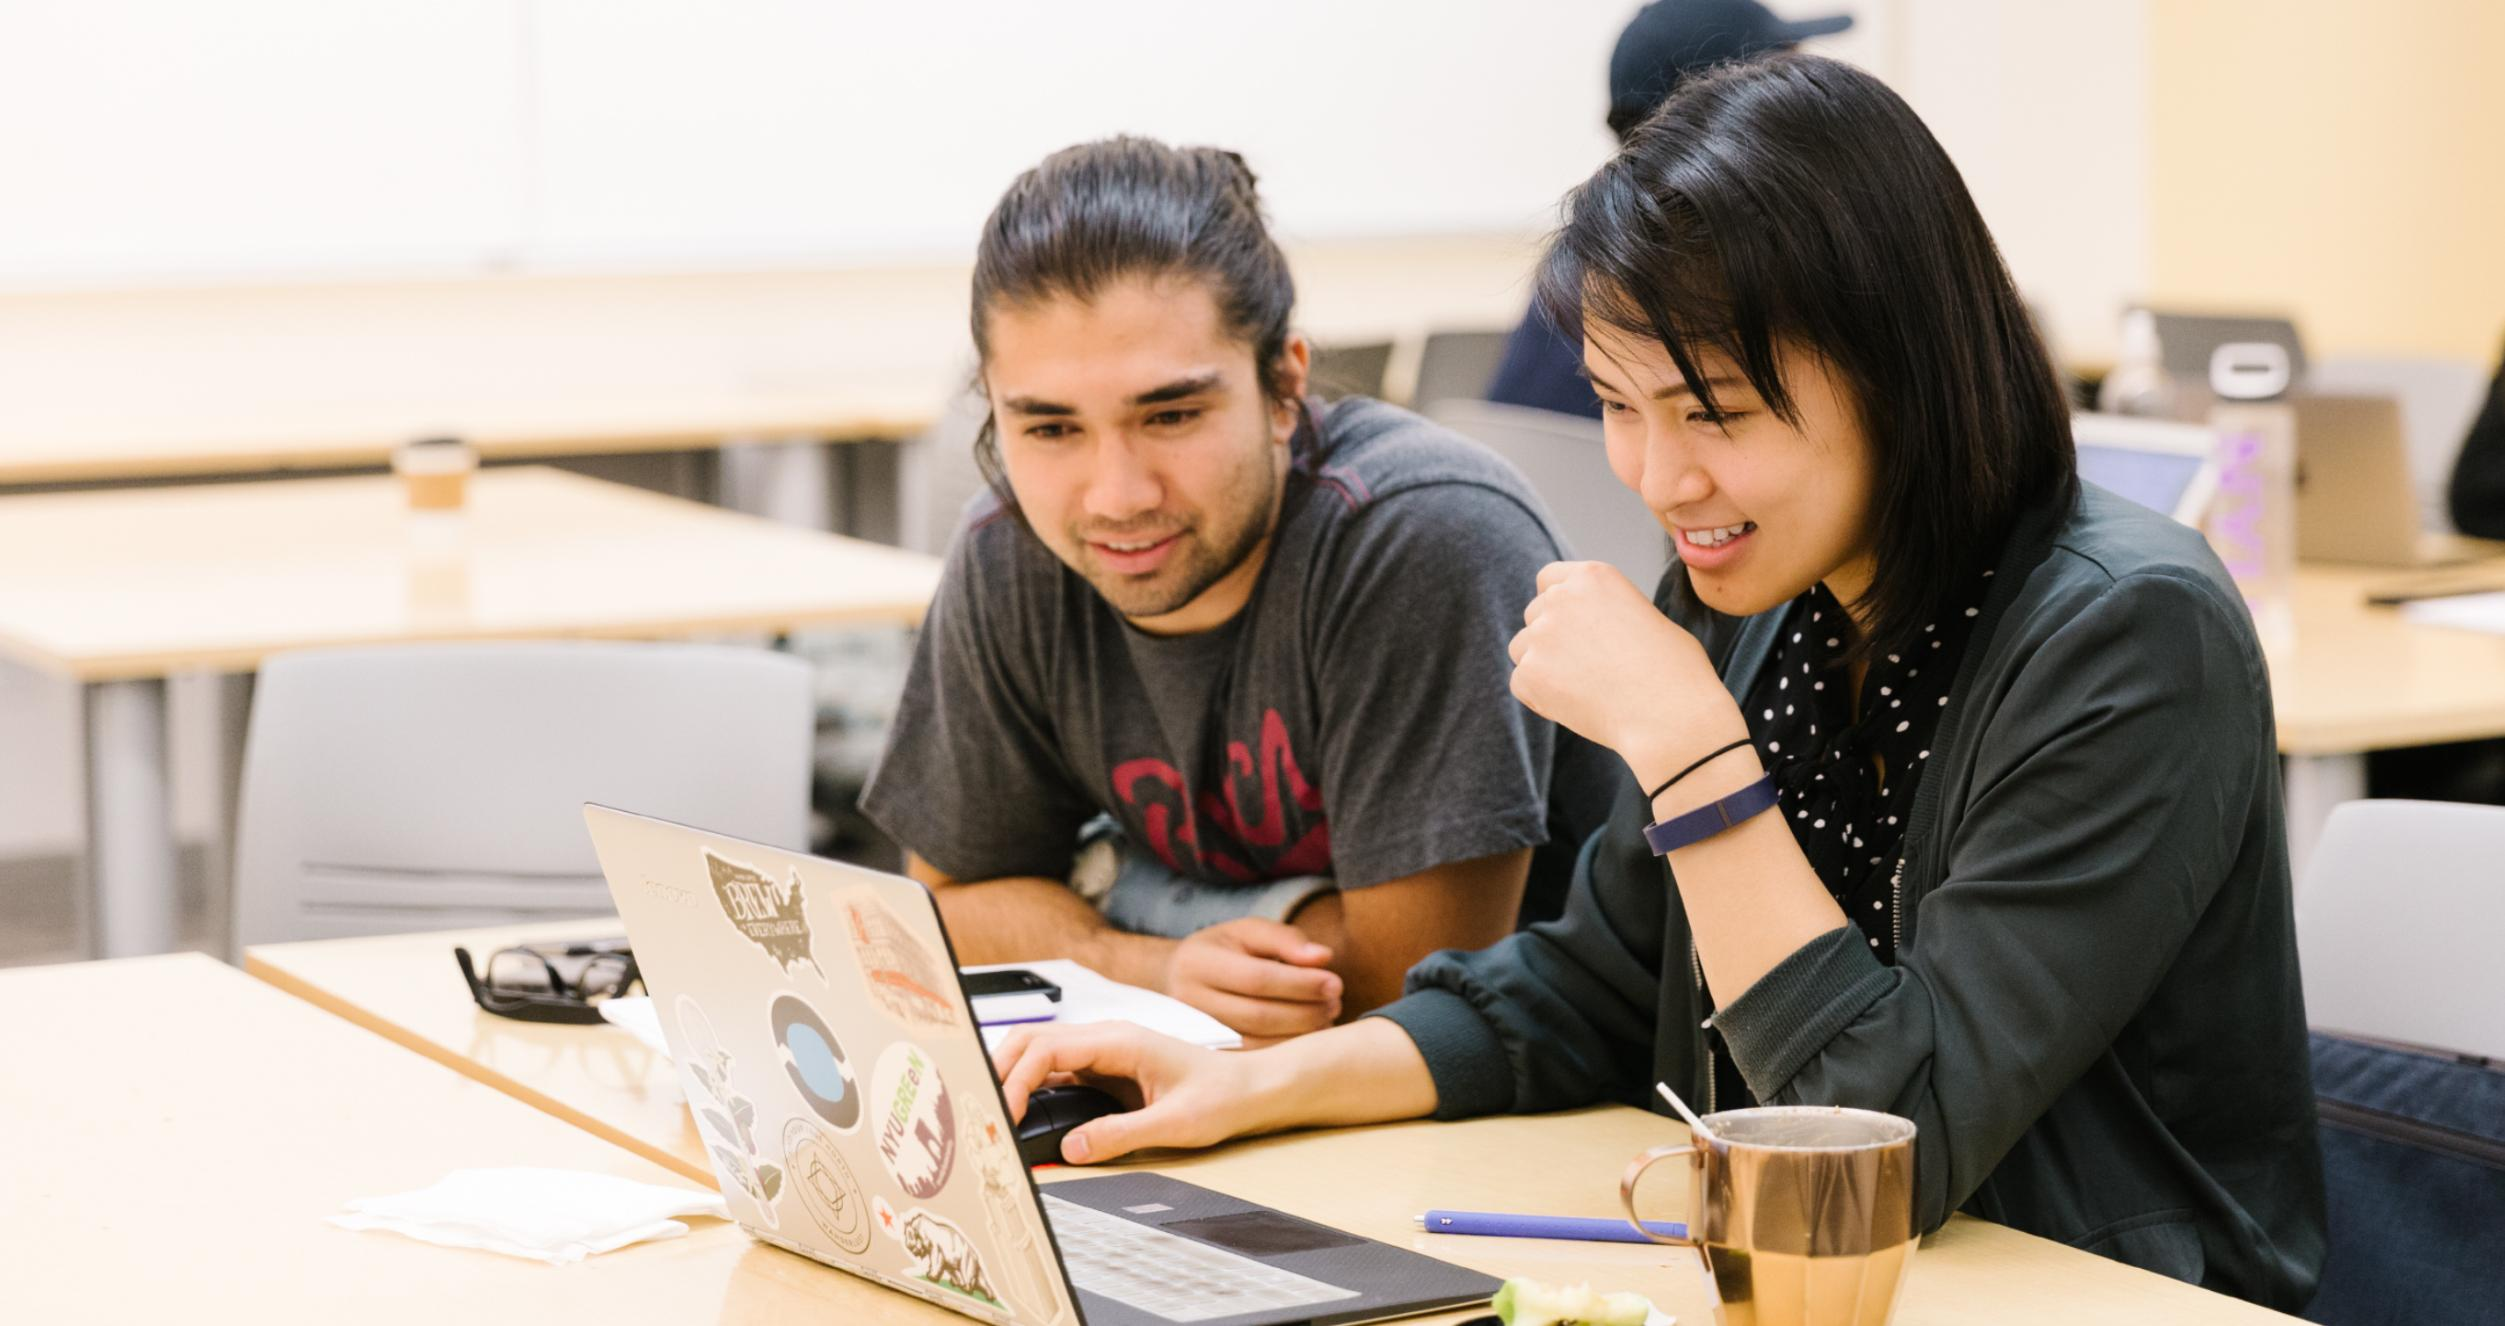 Two NYU Stern students are looking at a computer together in class